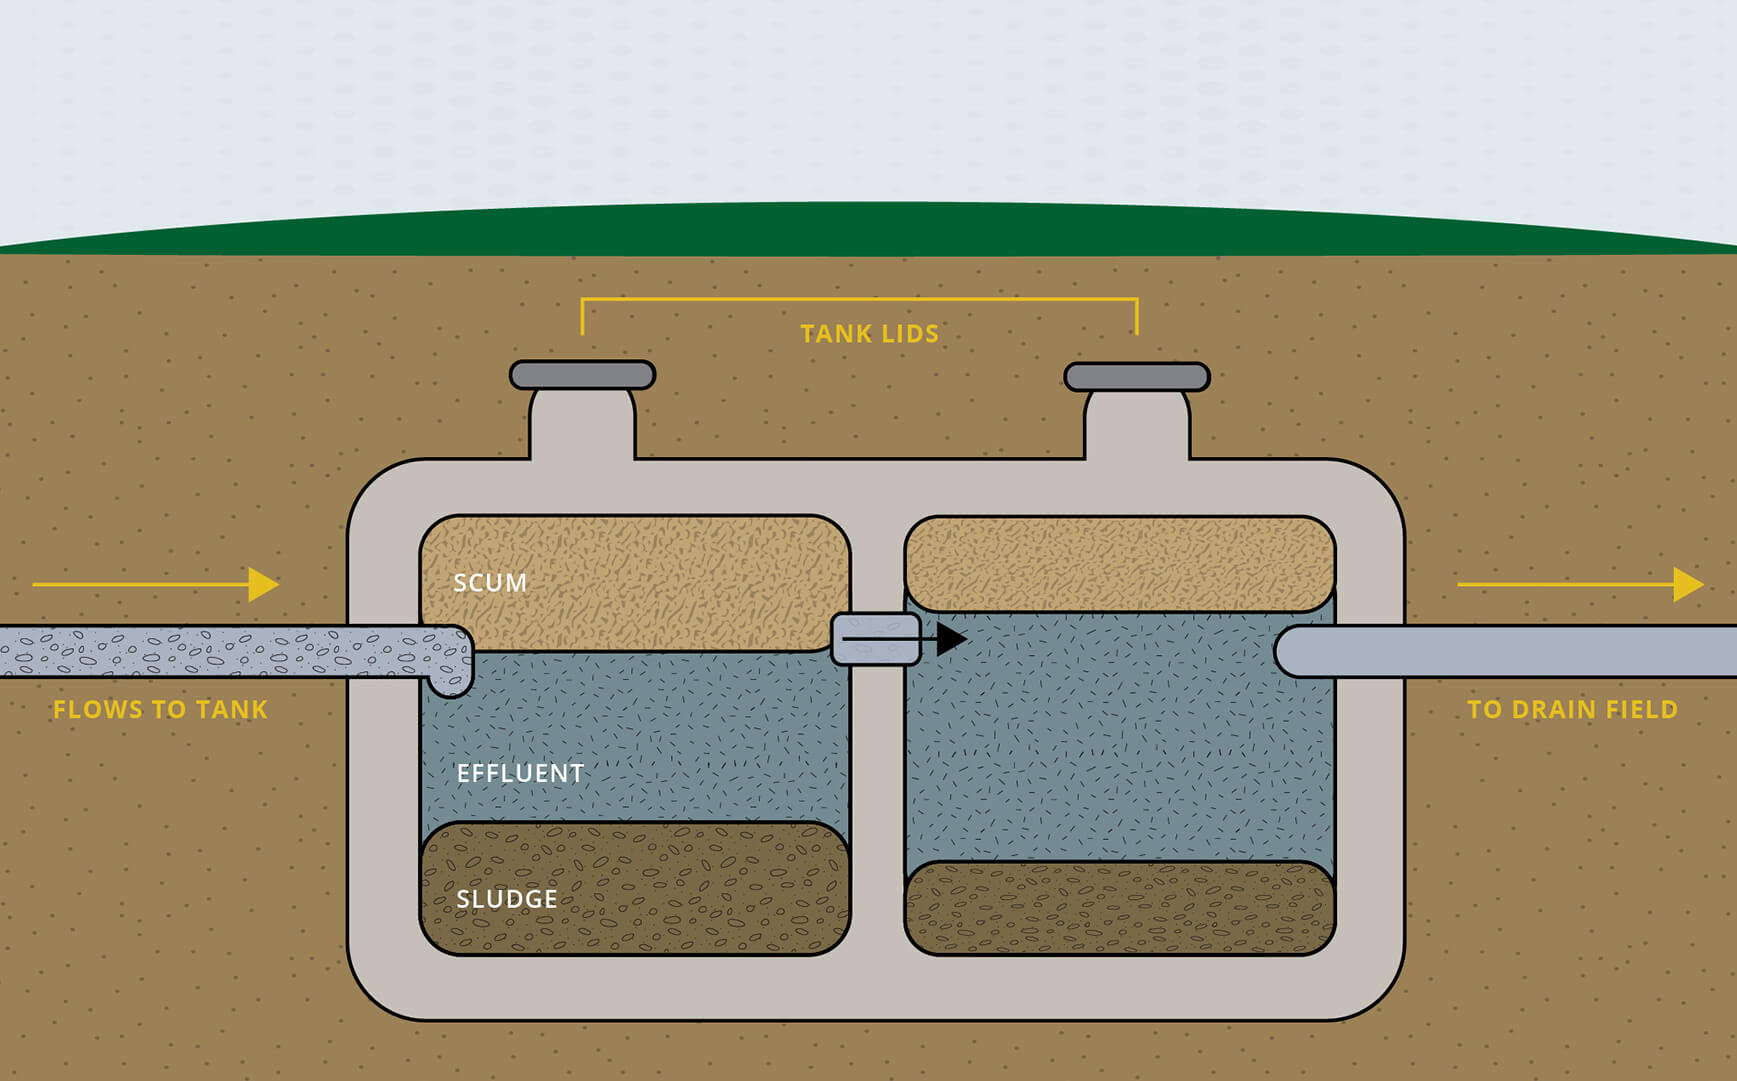 An illustration of a two-compartment septic tank system.